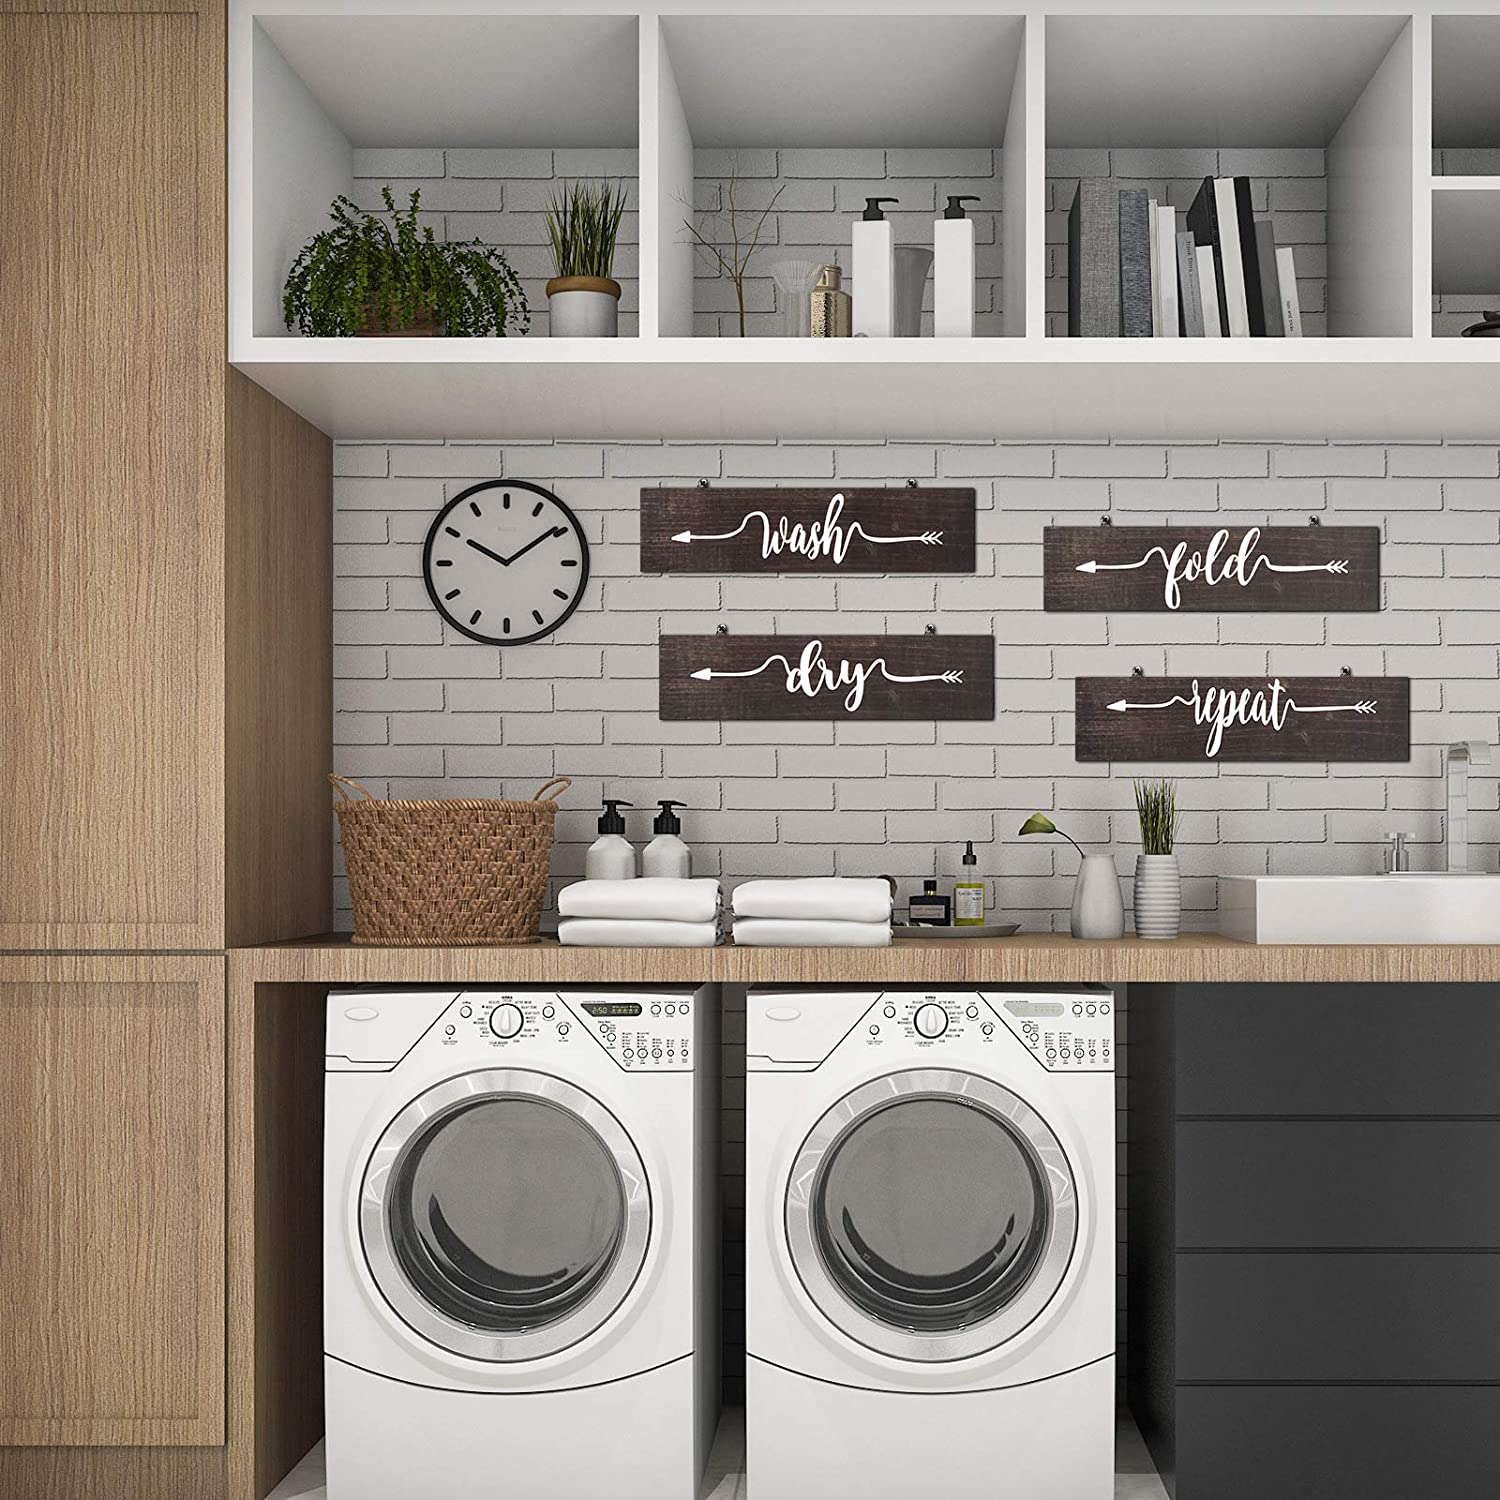 20 Pieces Rustic Laundry Signs Laundry Room Decor Hanging Wall Decor Sign  Laundry Room Decor Laundry Room Wall Art Wash Dry Fold and Repeat Sign for  ...